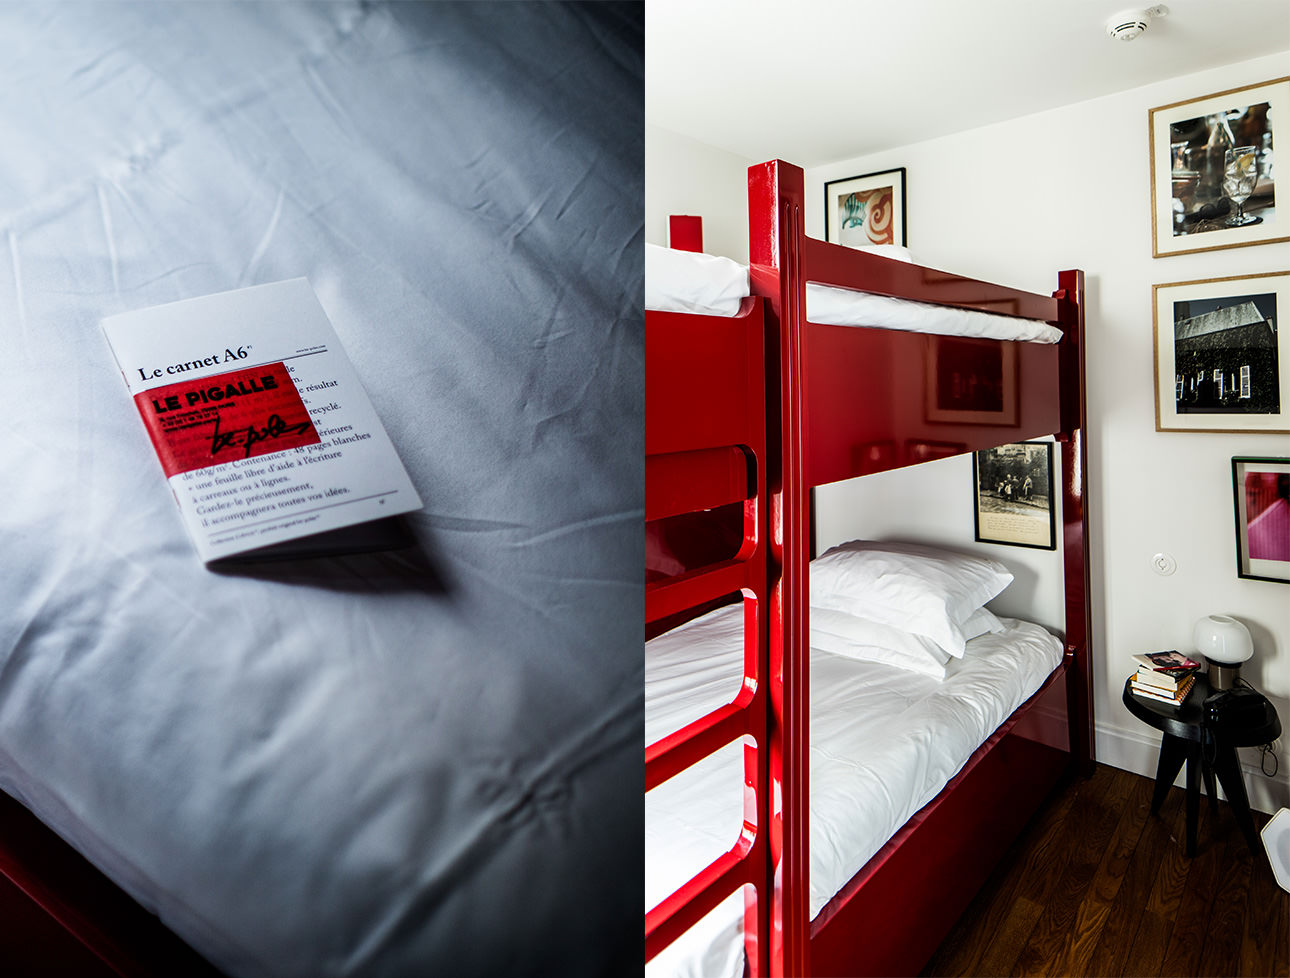 stationery-amenities-design-bunk-beds-le-pigalle-hotel-paris